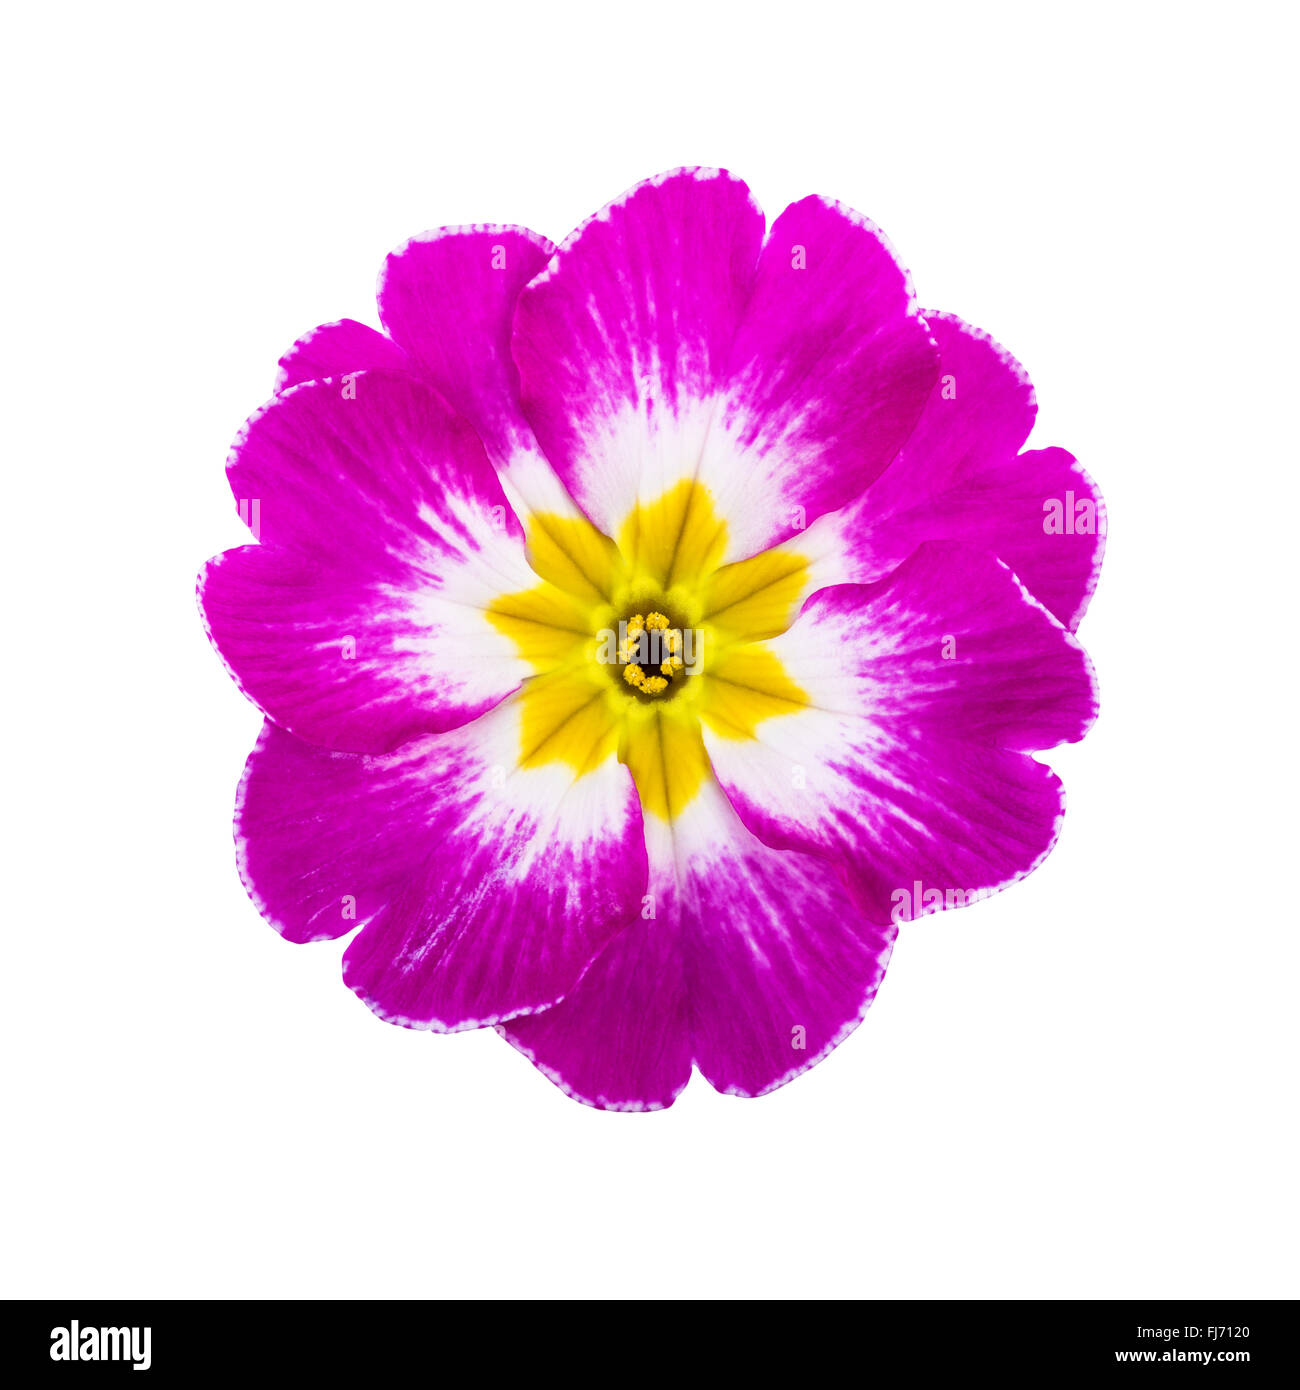 Pink Spring Flower Primrose Isolated on White - Stock Image